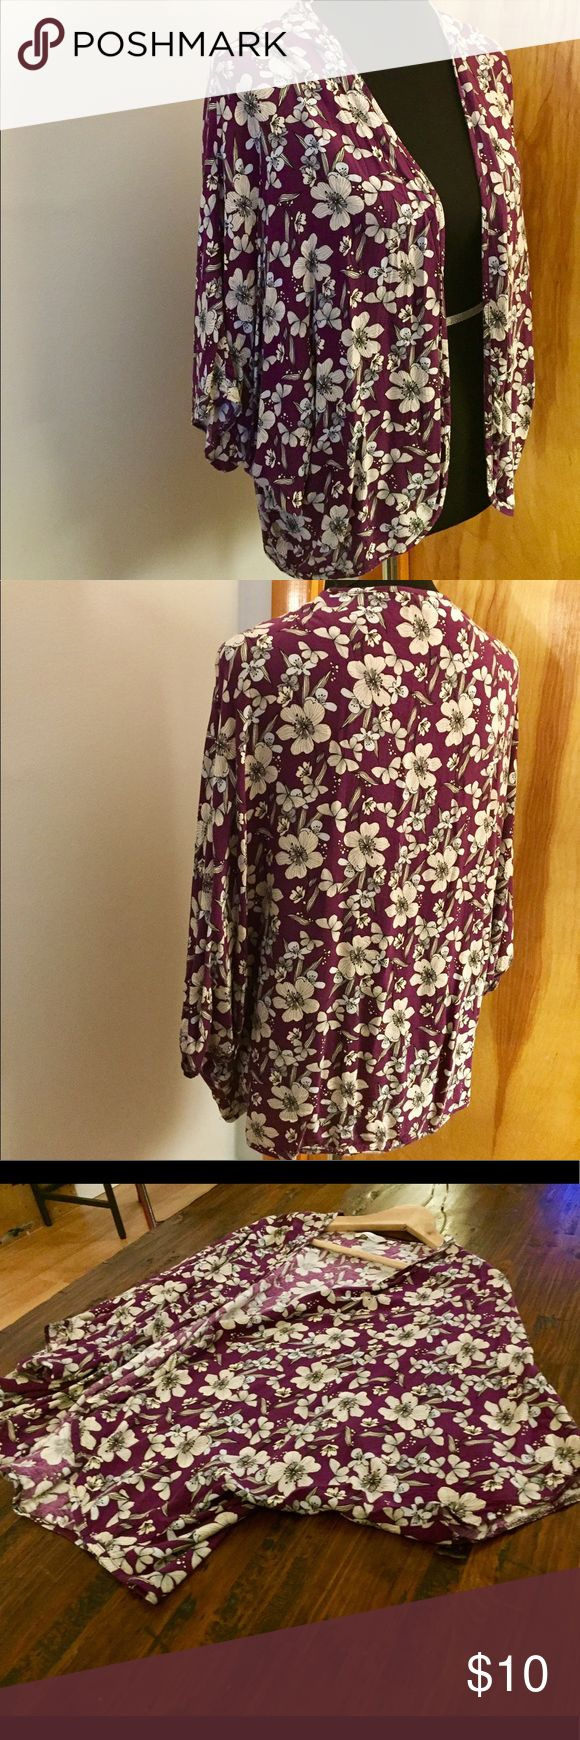 Floral Cover-Up Purple with white flowers, this top is lightweight and flowy with dolman sleeves. No front enclosure. Worn once. Peacocks Tops